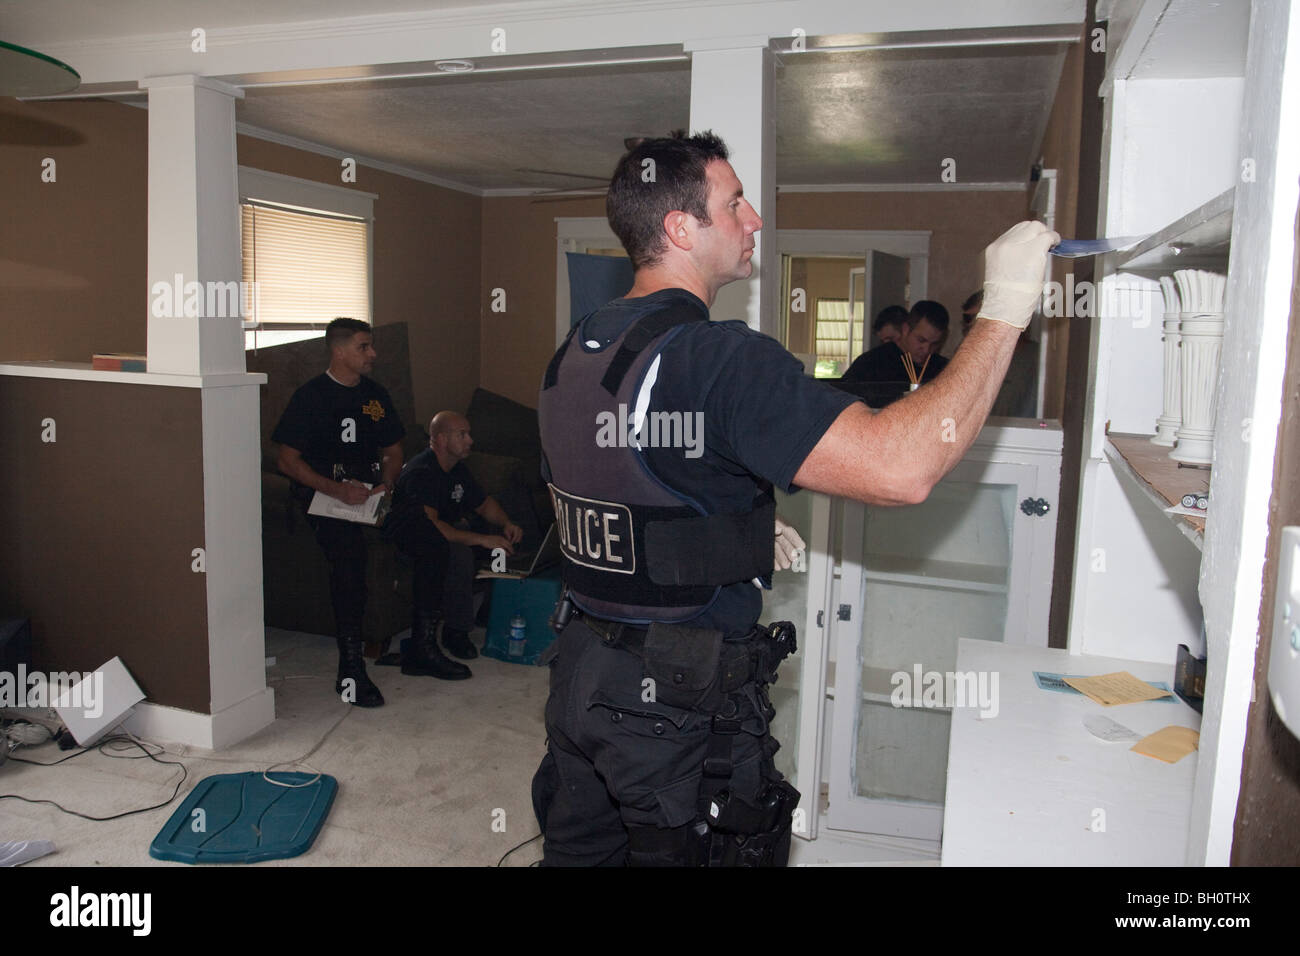 Police Search House Stock Photos & Police Search House